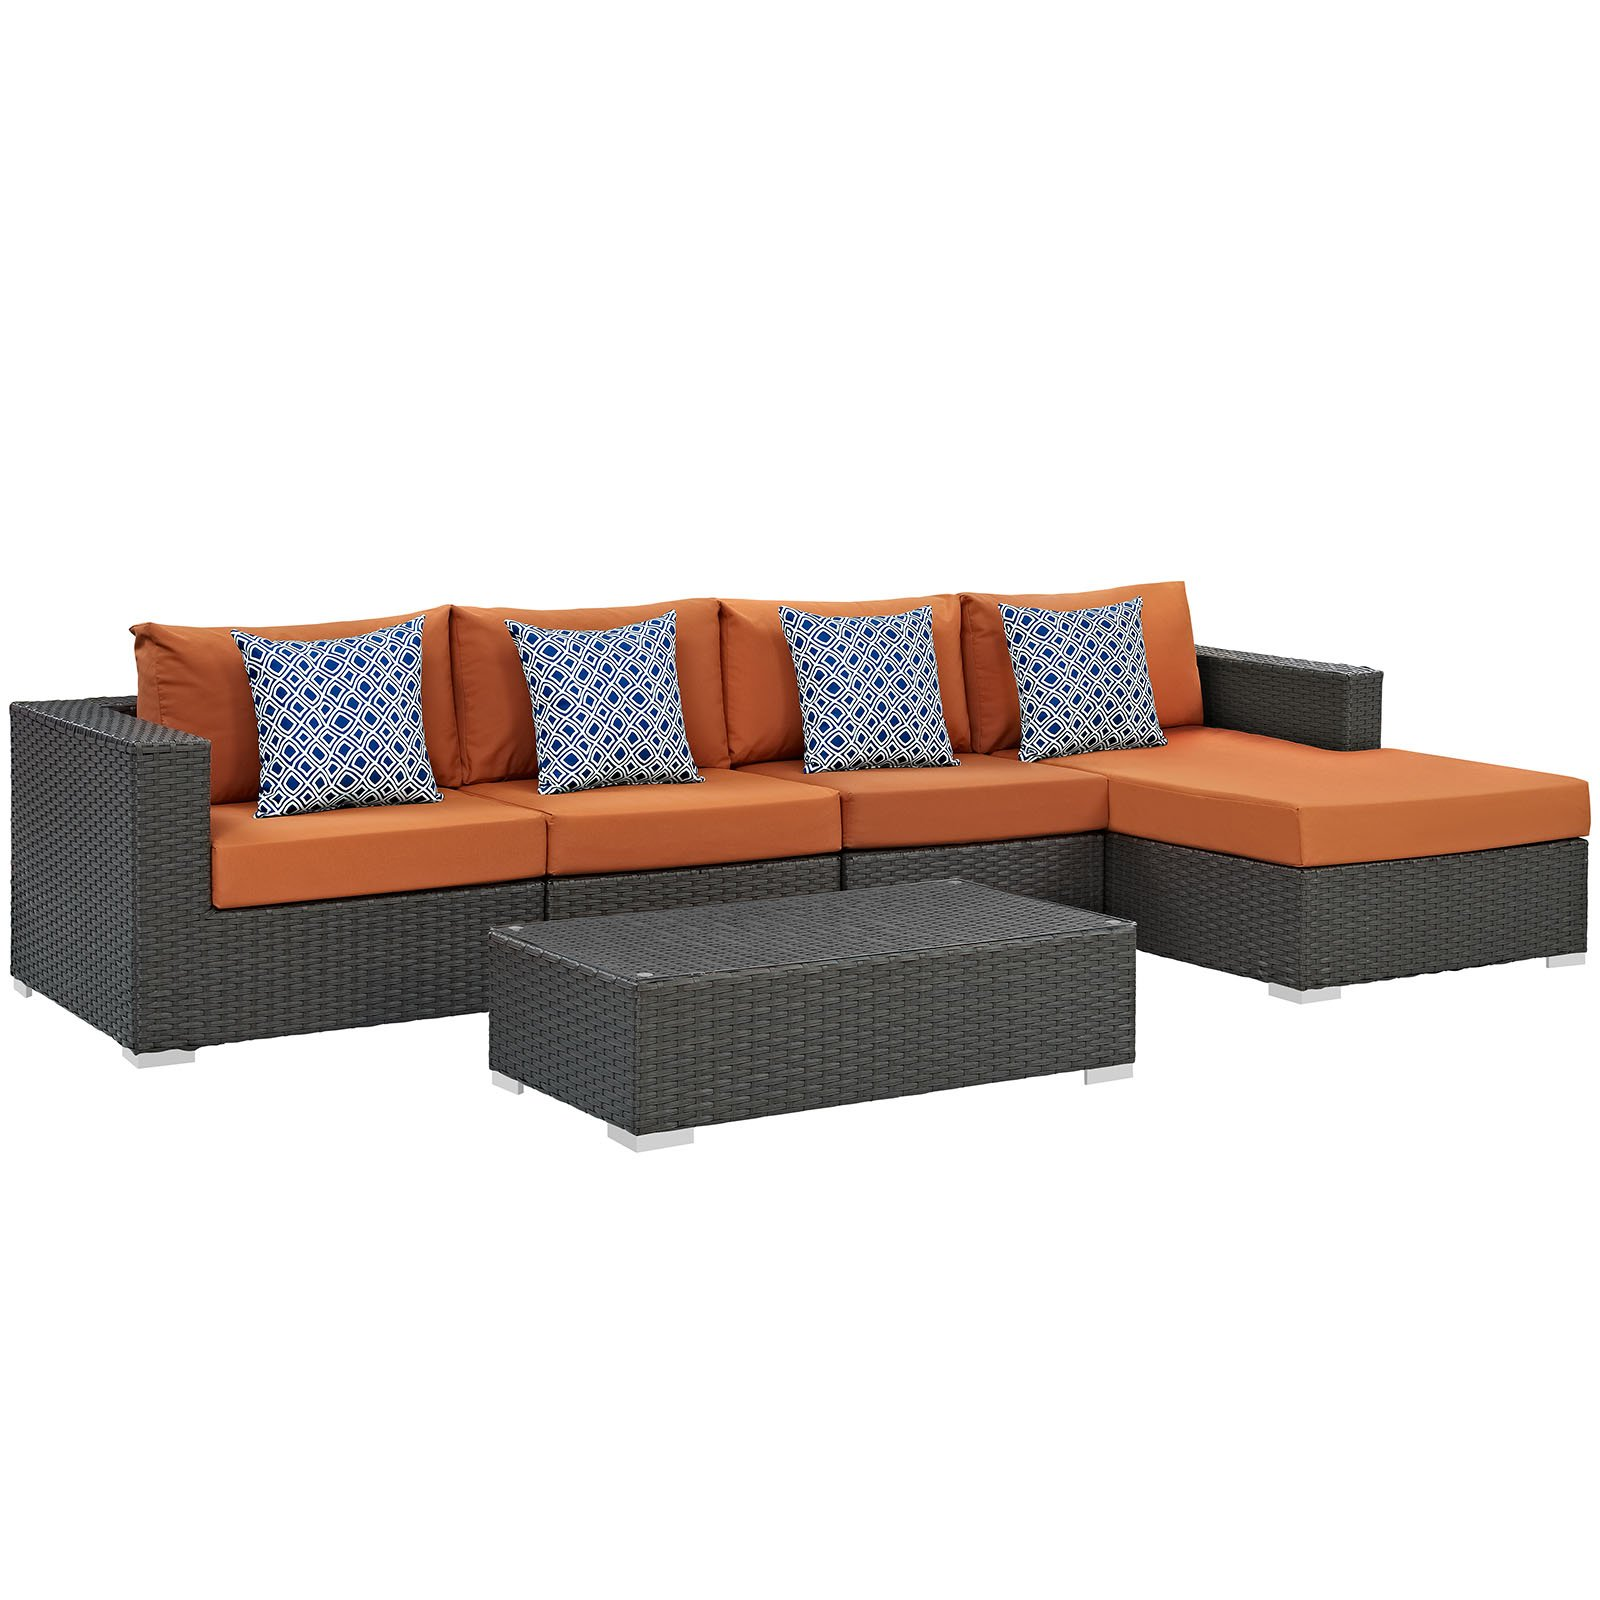 Modway EEI-2382-CHC-TUS-SET Sojourn Wicker Rattan Outdoor Patio Coffee Table, Seating for Five, Canvas Tuscan